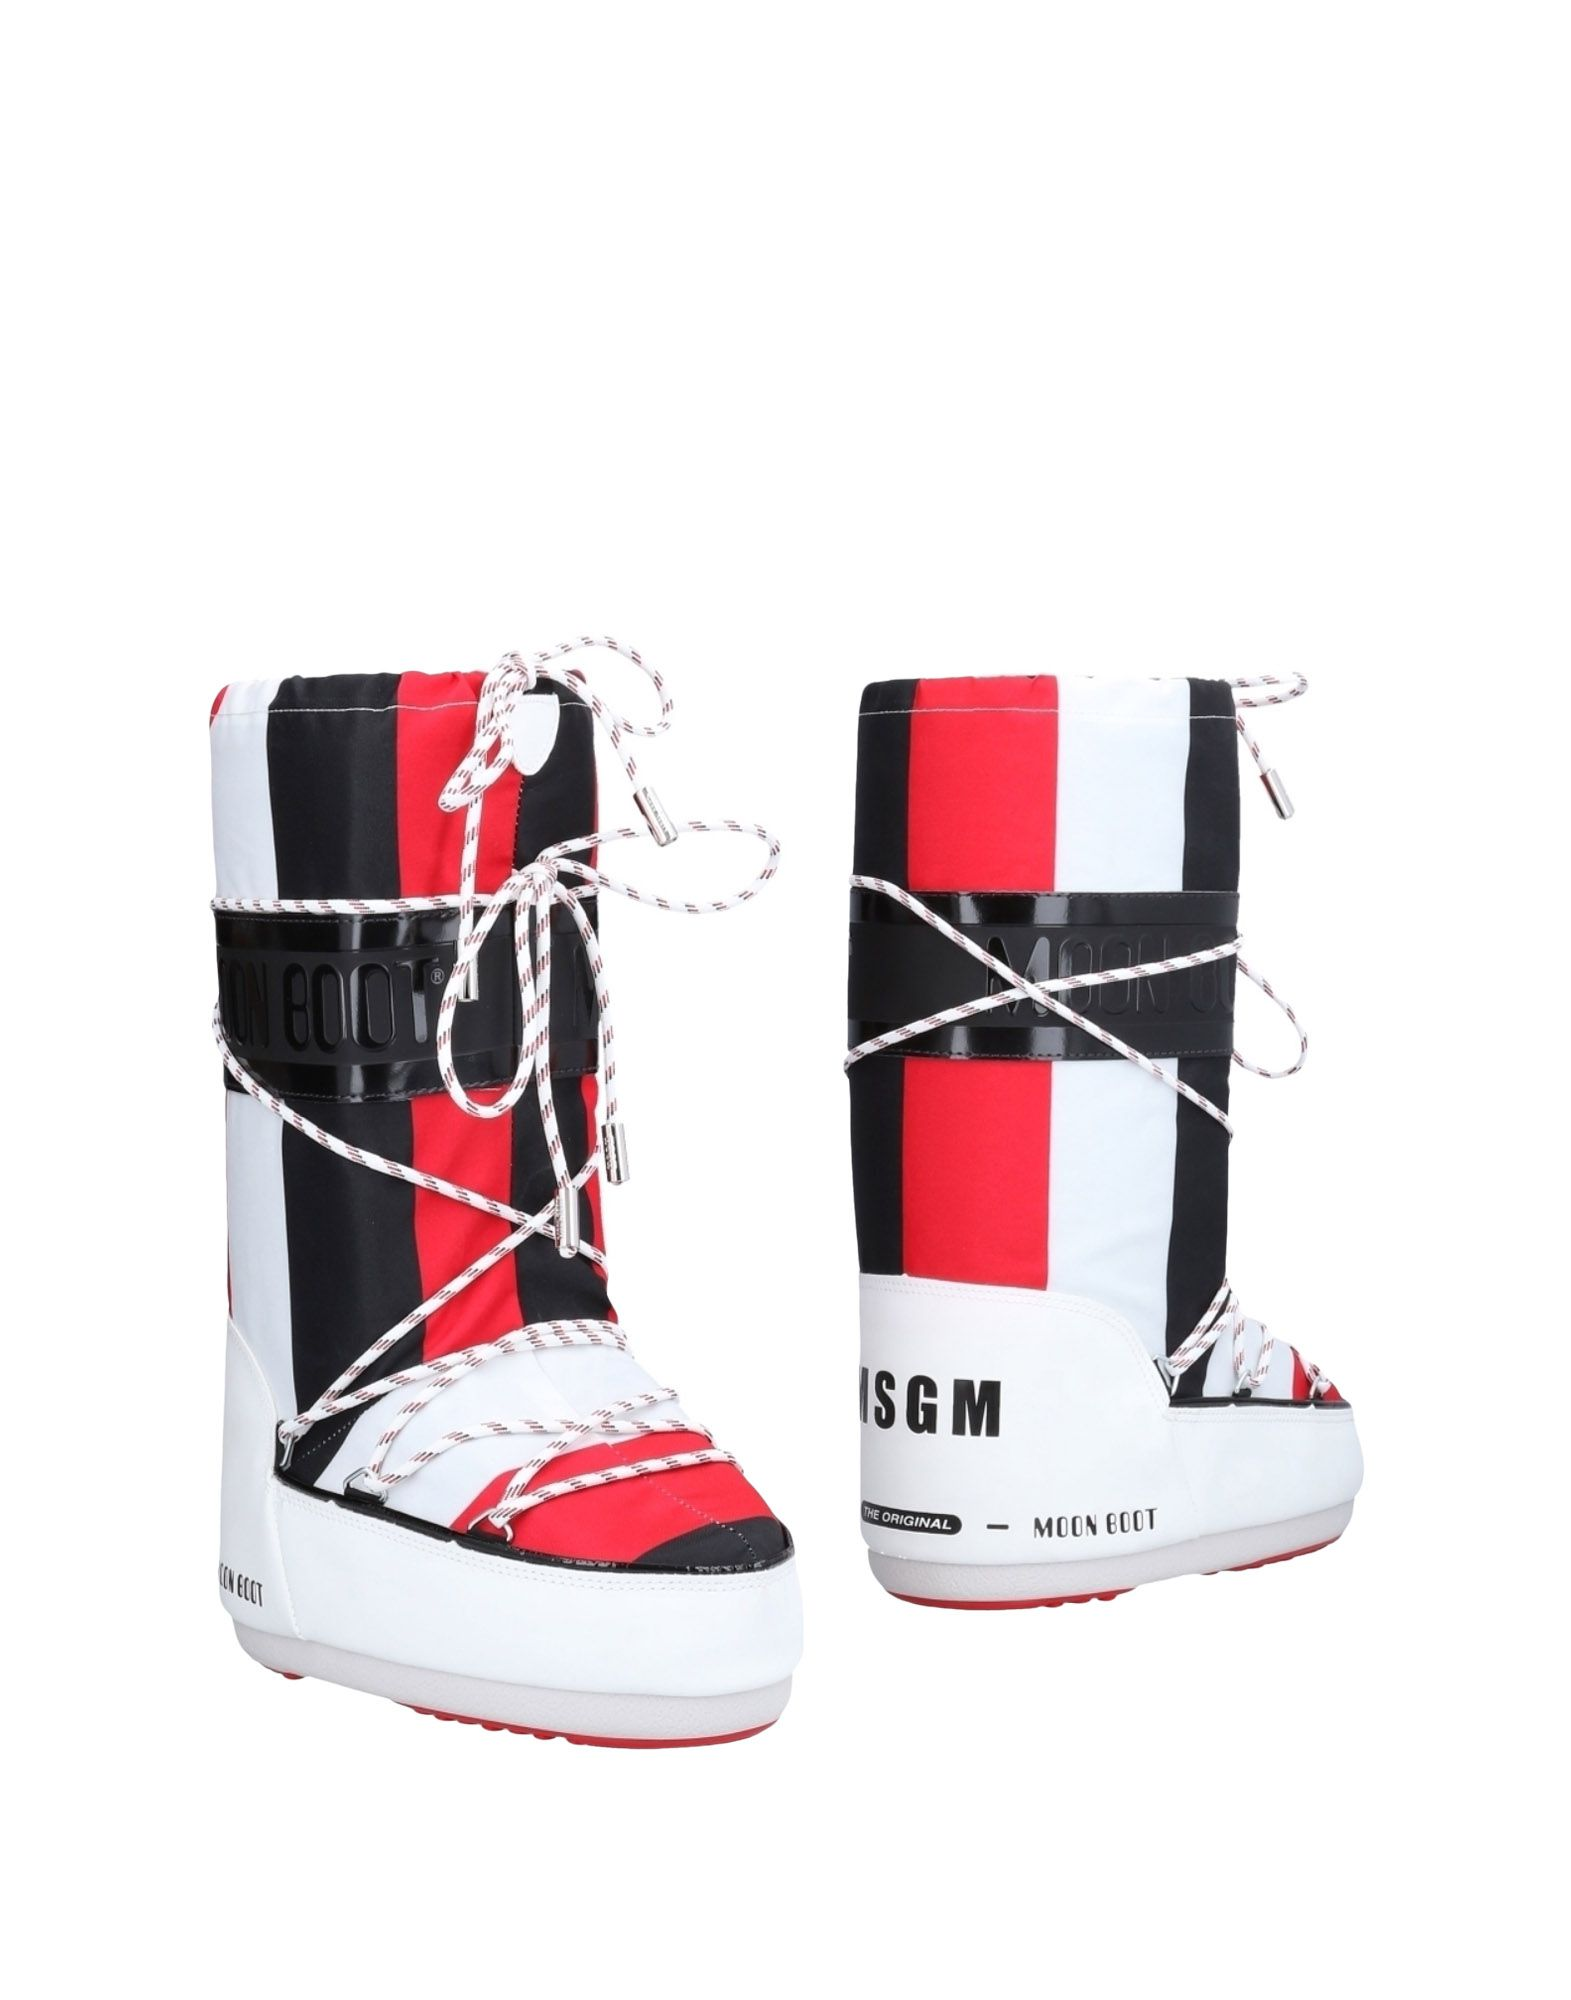 MOON BOOT THE ORIGINAL MSGM Сапоги verne j from the earth to the moon and round the moon с земли на луну прямым путем за 97 часов 20 минут на английском языке